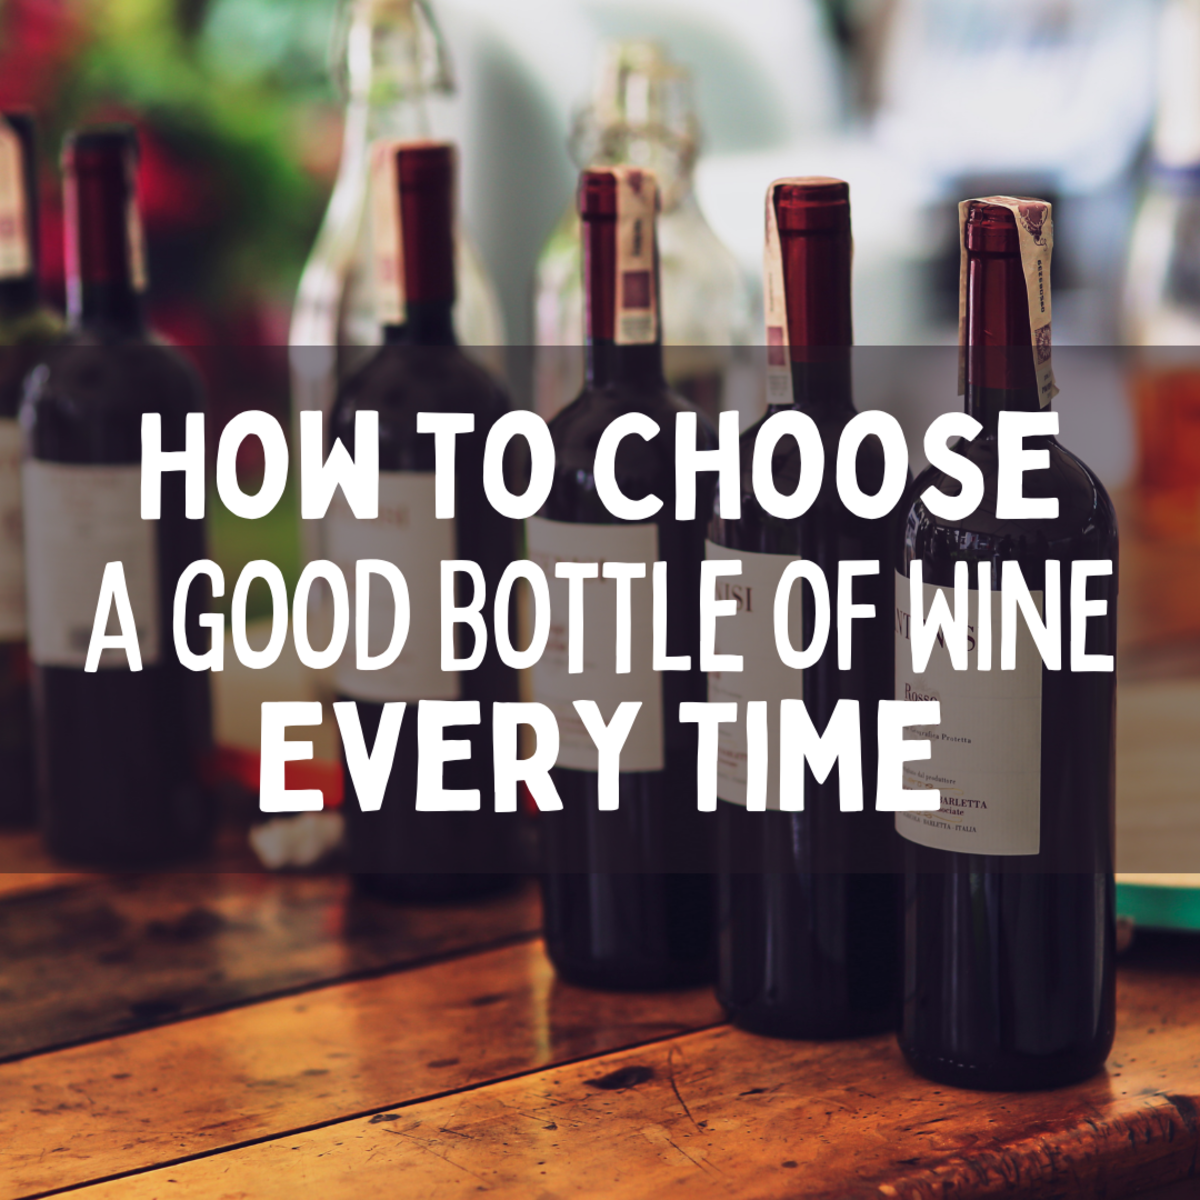 how-to-choose-a-good-bottle-of-wine